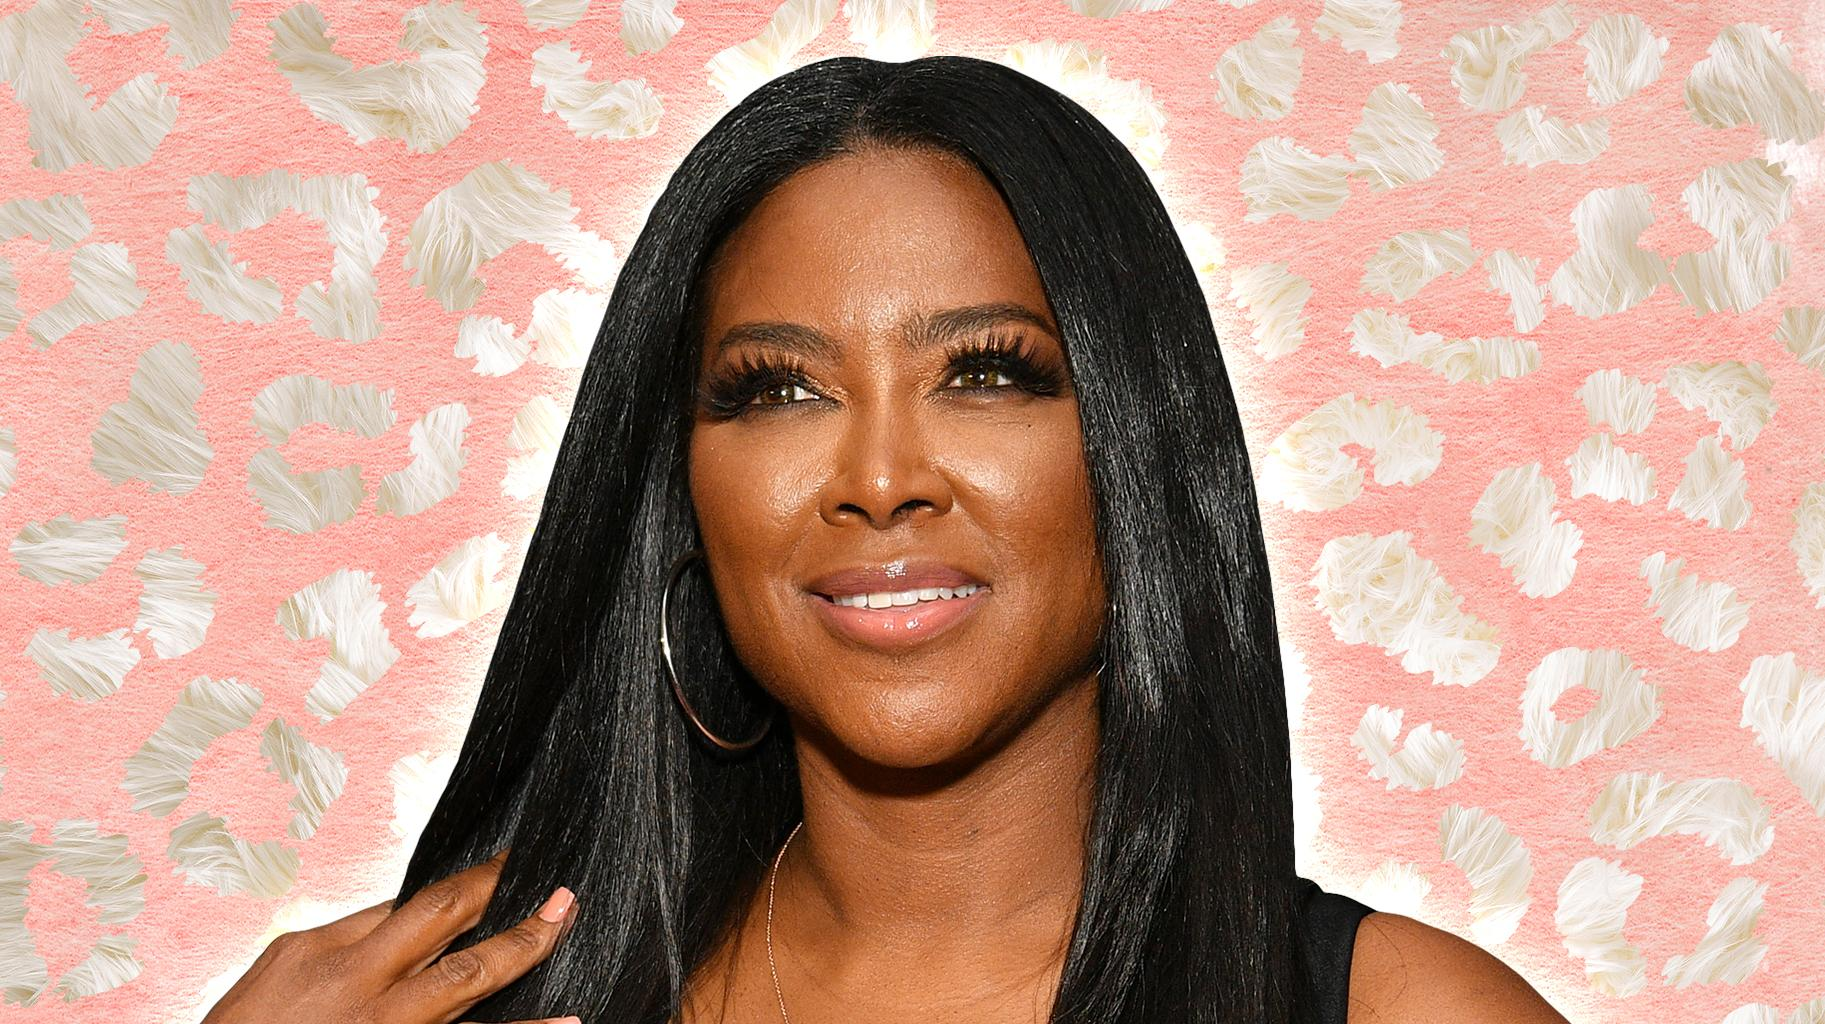 Kenya Moore Has A Leg Up On The Competition - See Her Outfit In This Photo